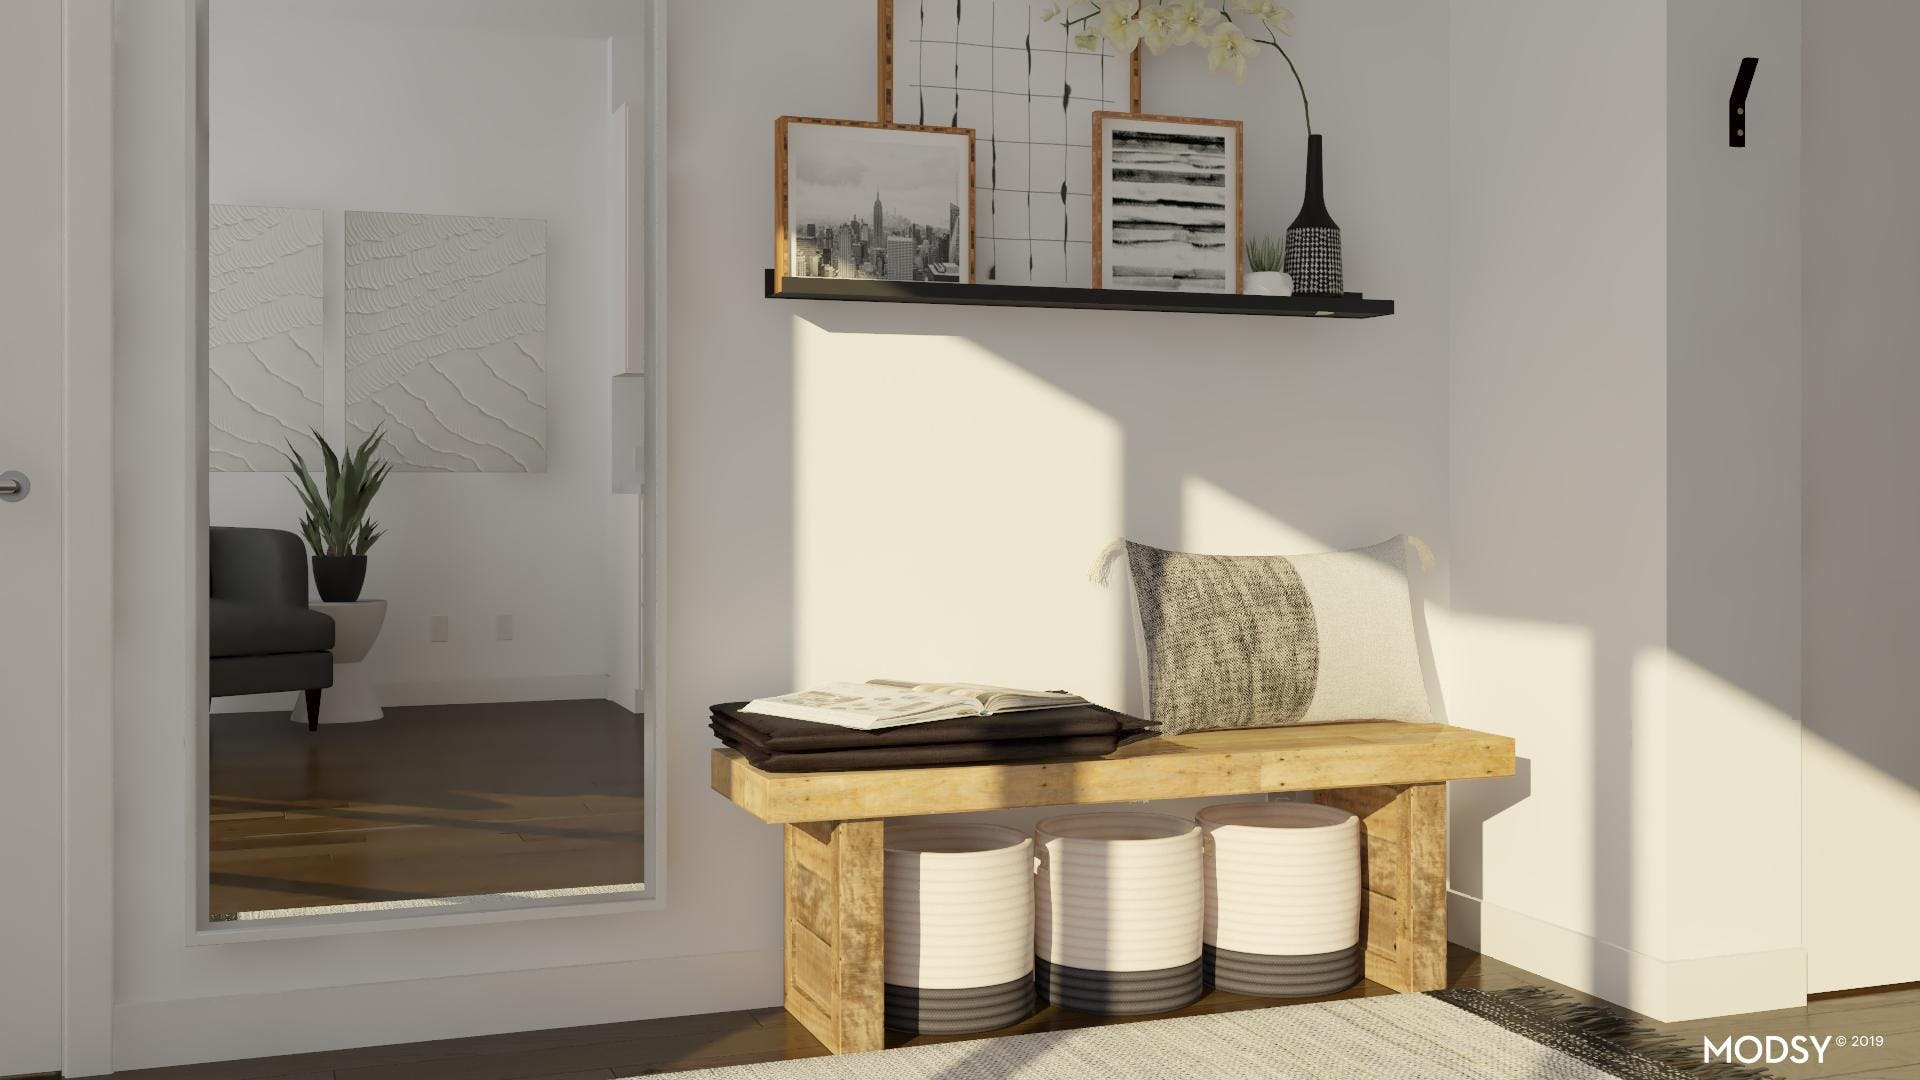 Making An Entry In Your Small Space With A Modern Warm Black And White Design